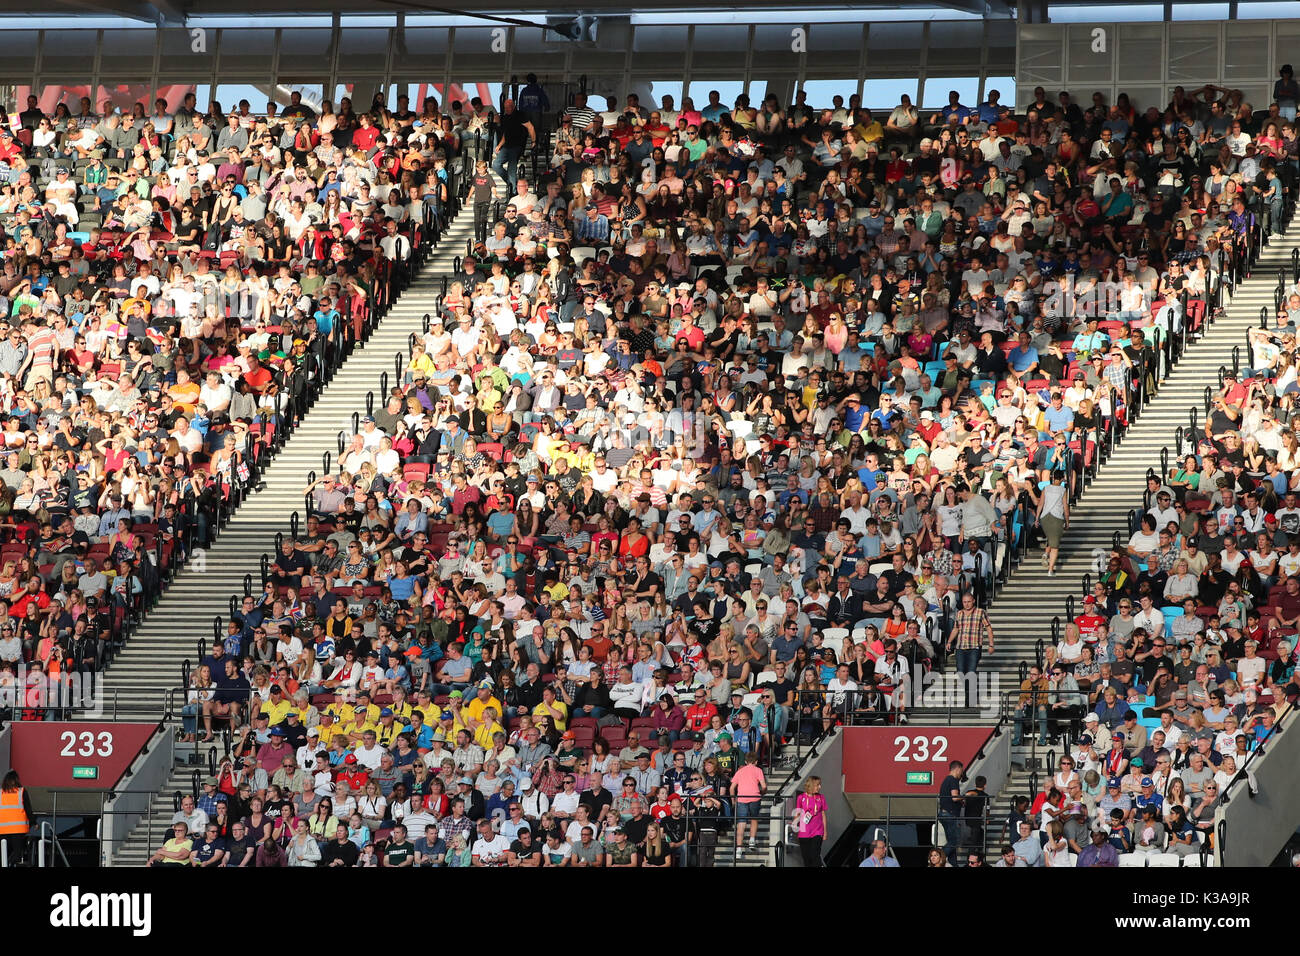 Spectators enjoying the 2017 IAAF World Championships, Queen Elizabeth Olympic Park, Stratford, London, UK, 6th August 2017 - Stock Image